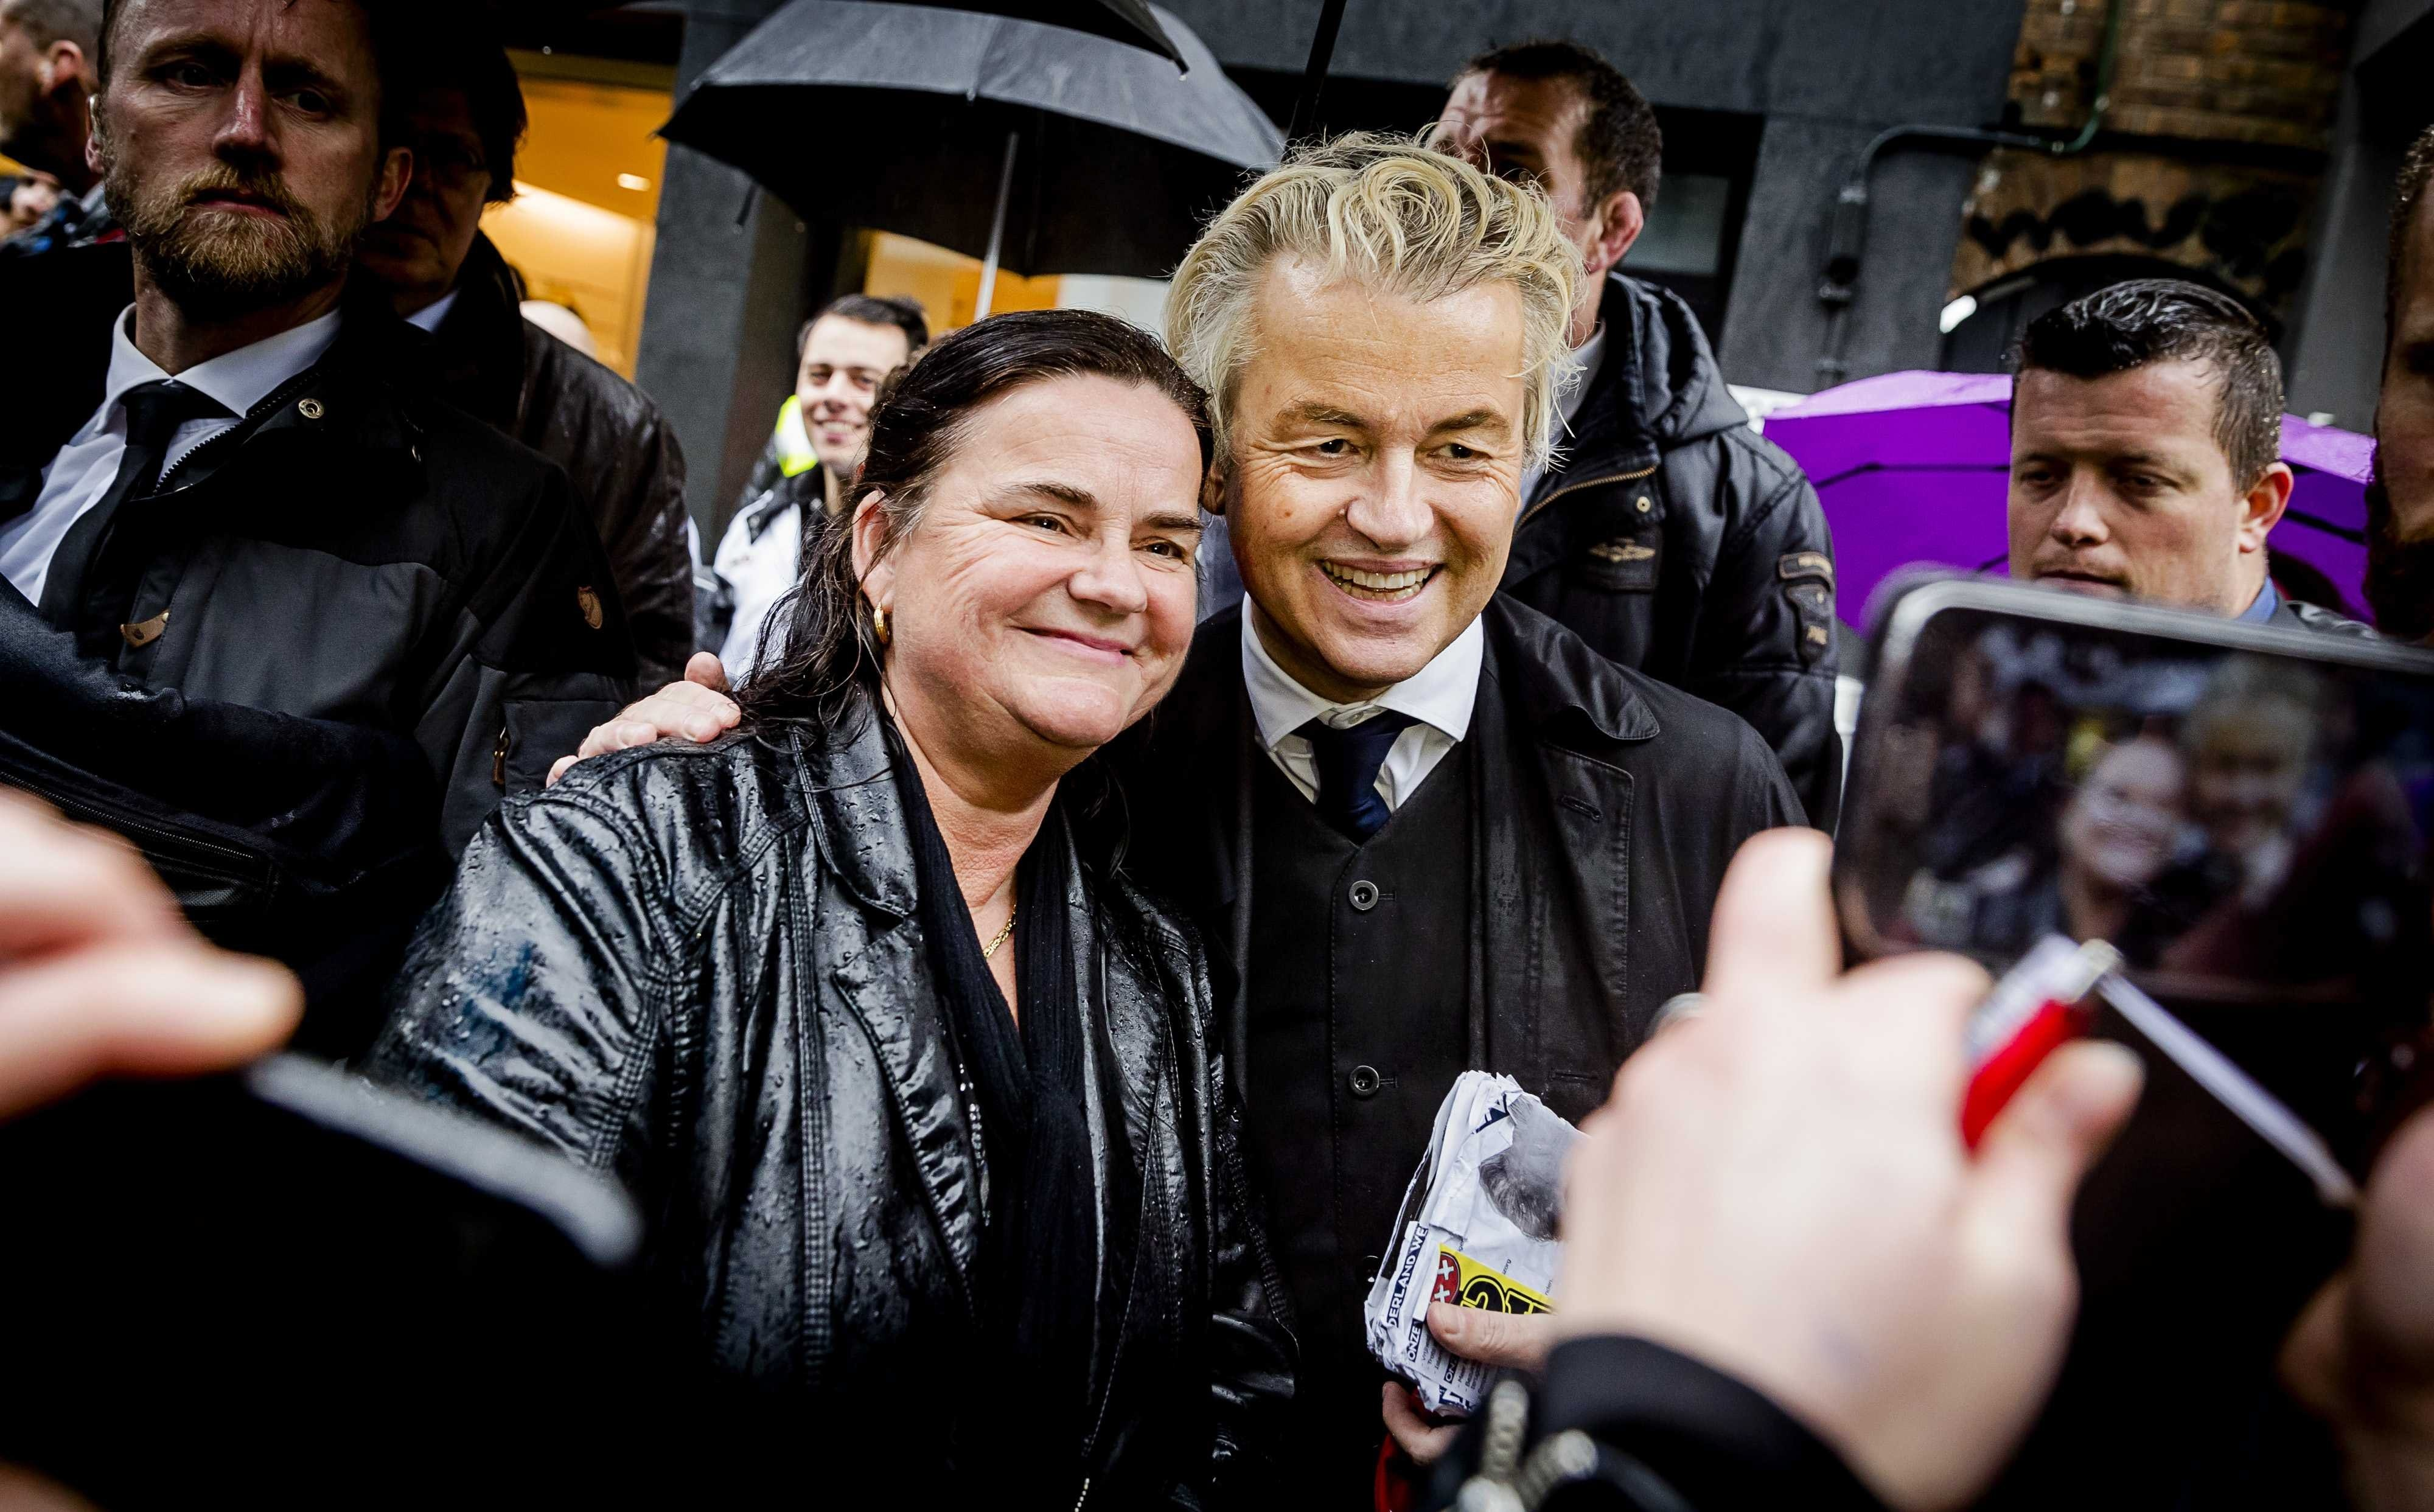 Dutch politician and Party for Freedom leader Geert Wilders campaigns in Breda, The Netherlands, 08 March 2017.